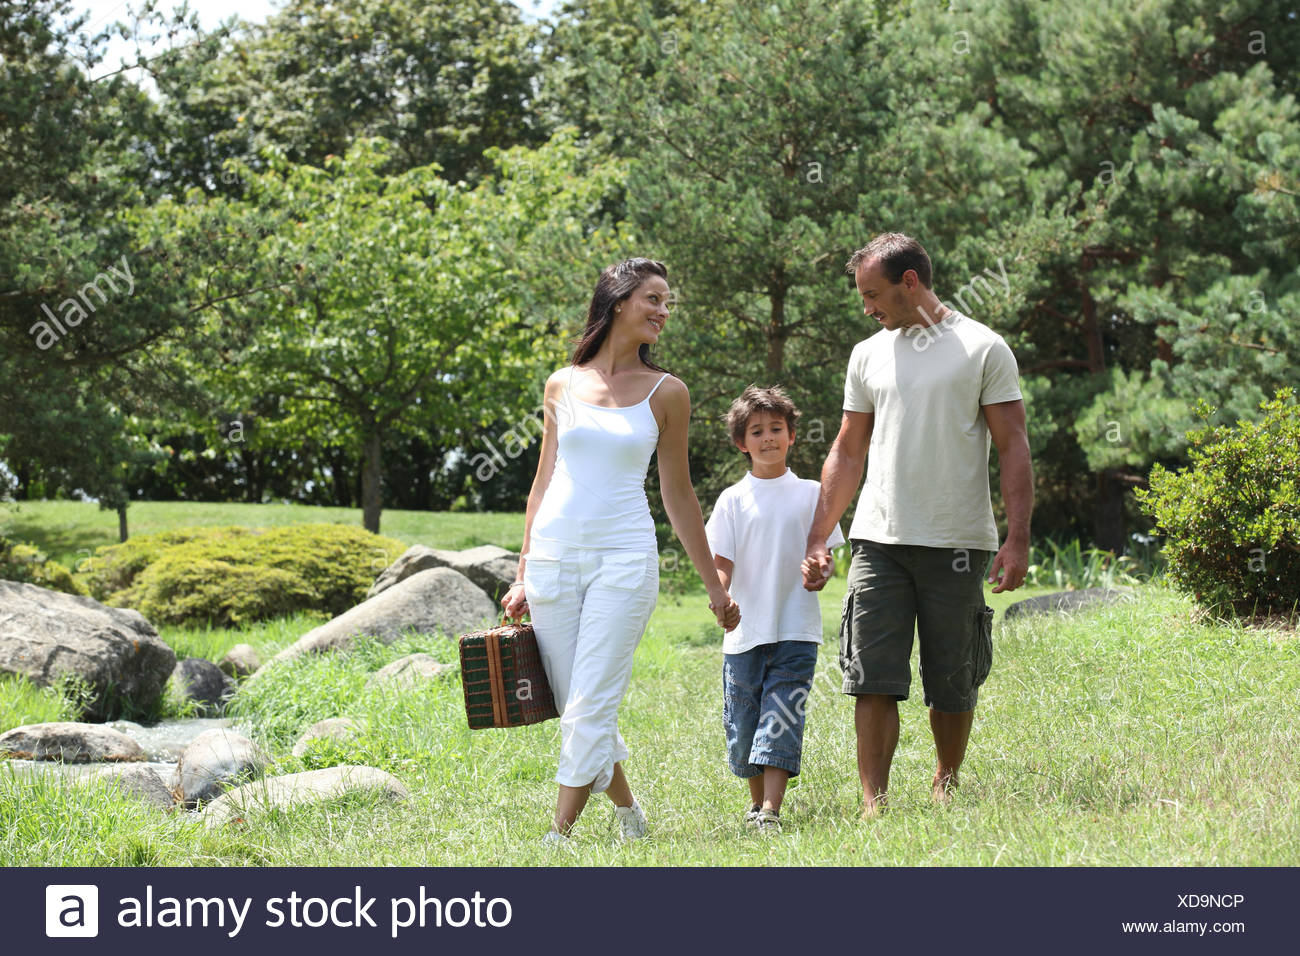 Family having picnic in the park - Stock Image